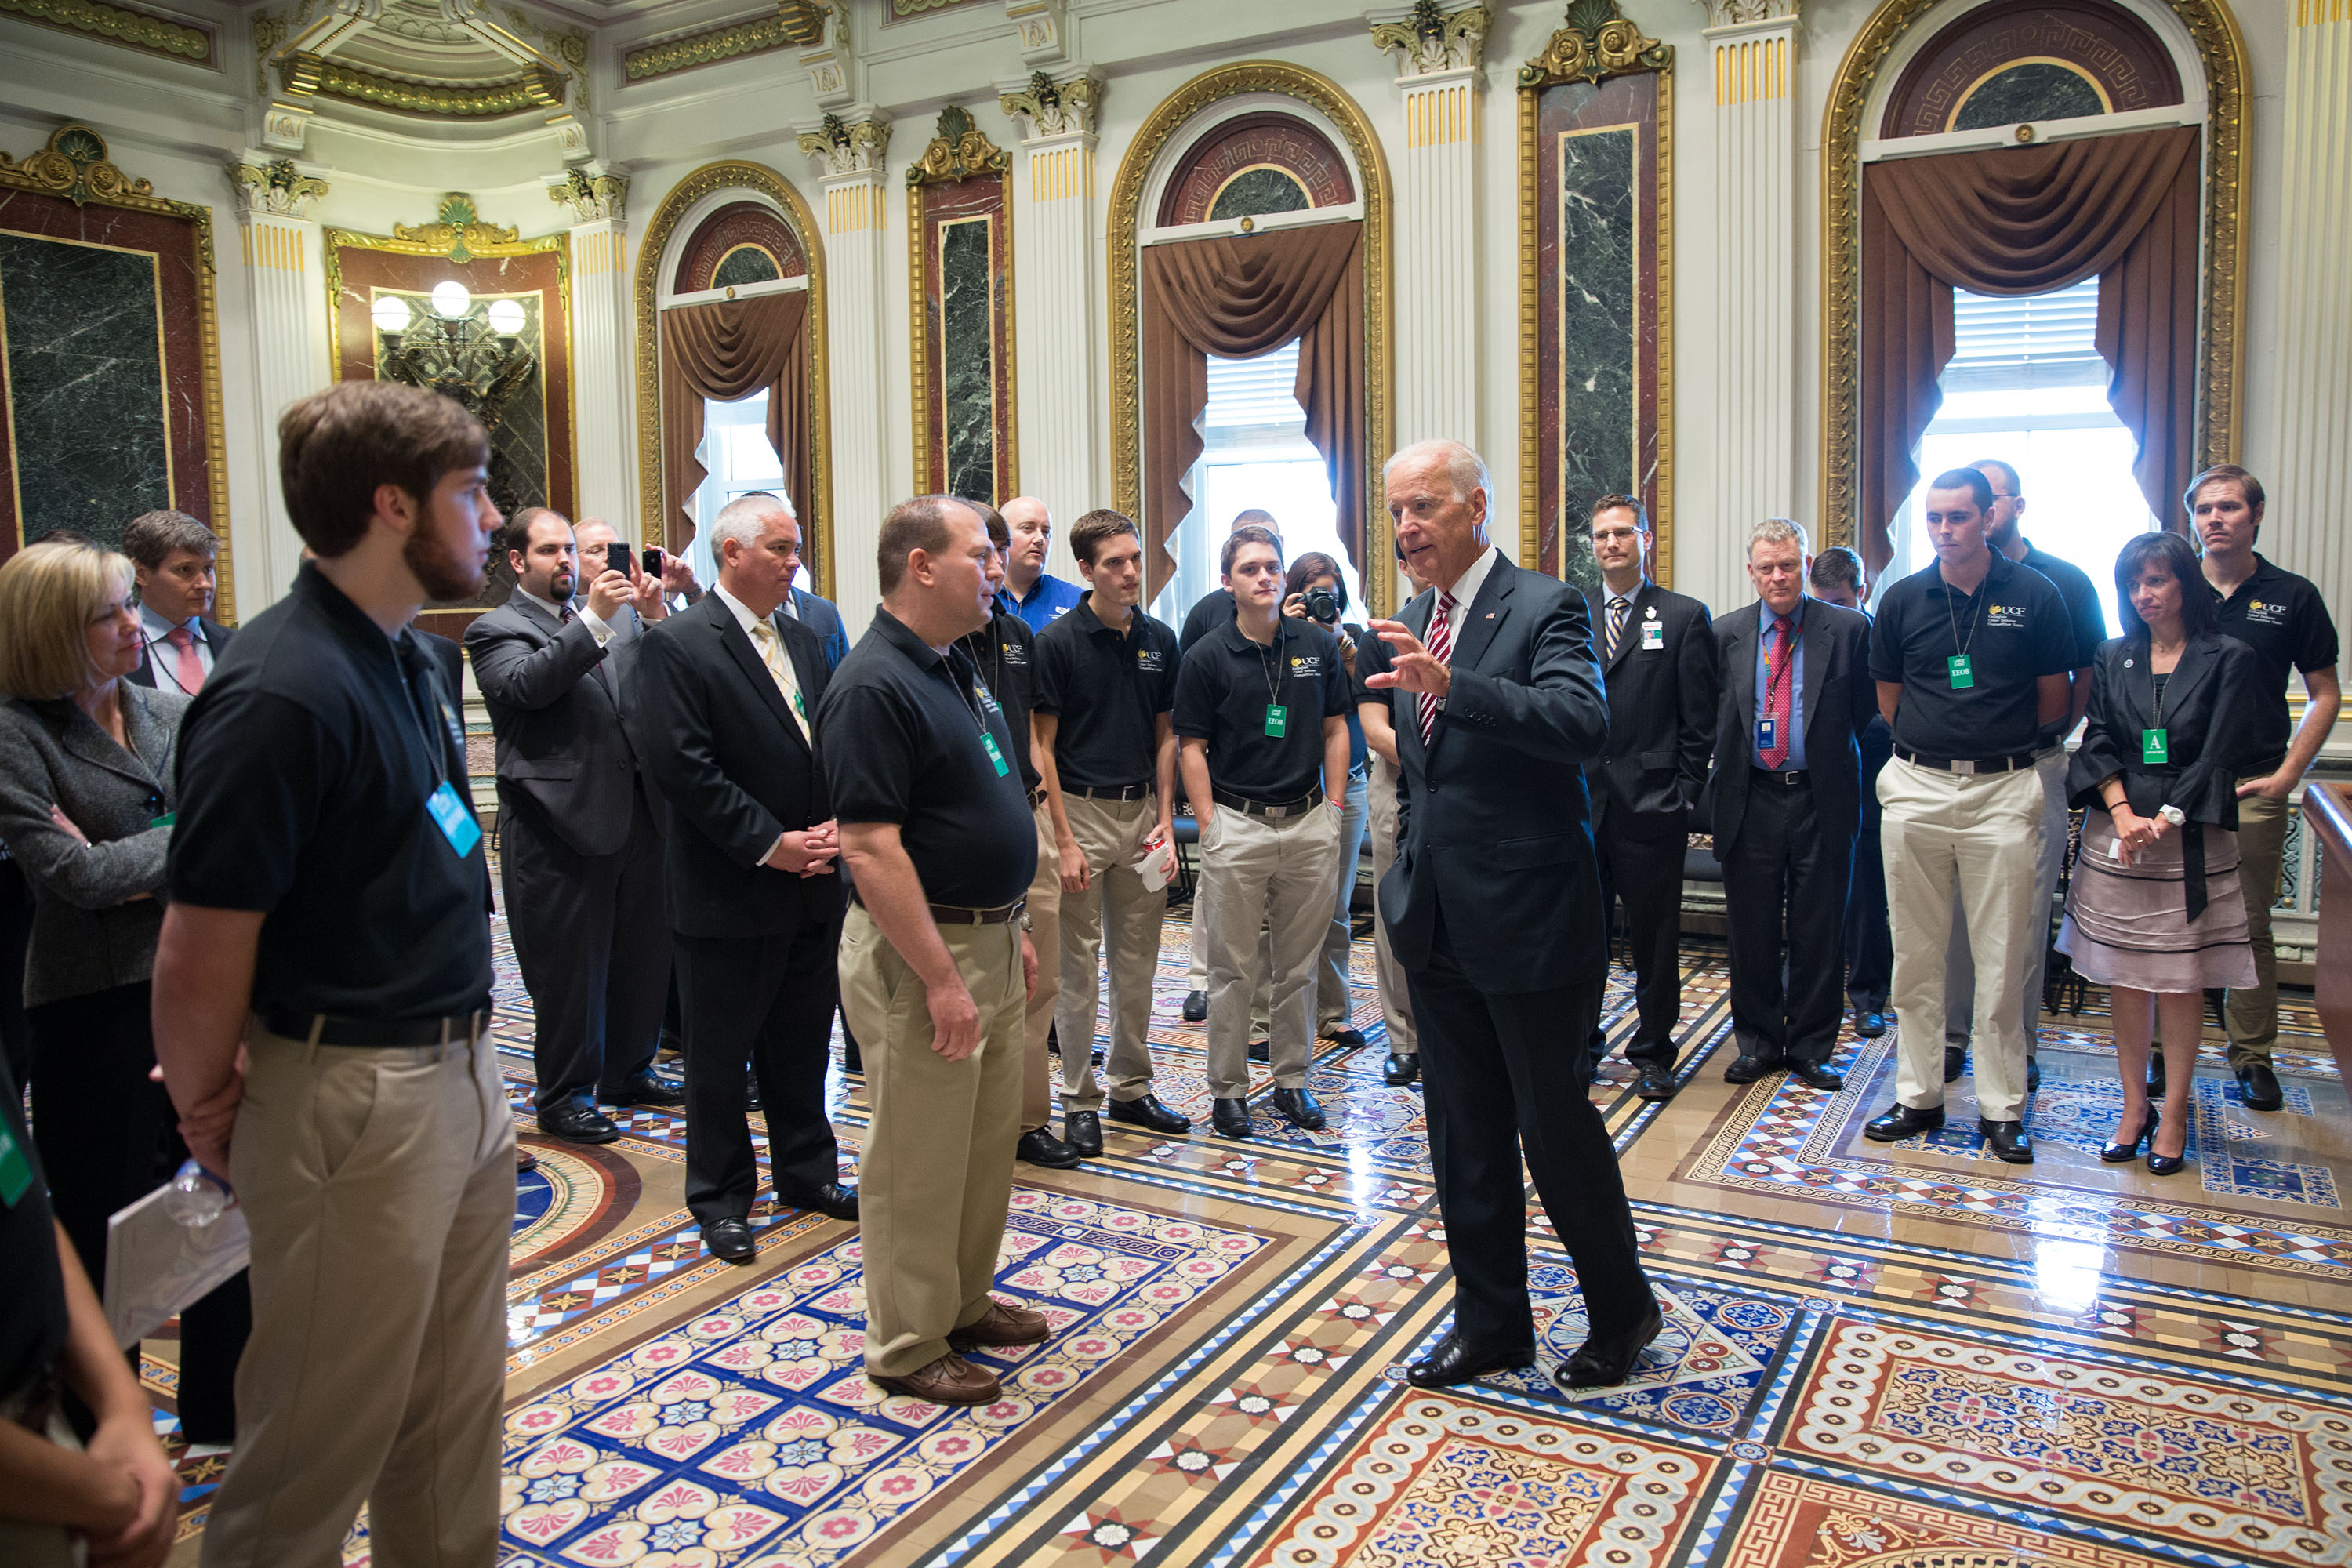 Vice President Joe Biden speaks to the 2014 National Collegiate Cyber Defense Competition Champions